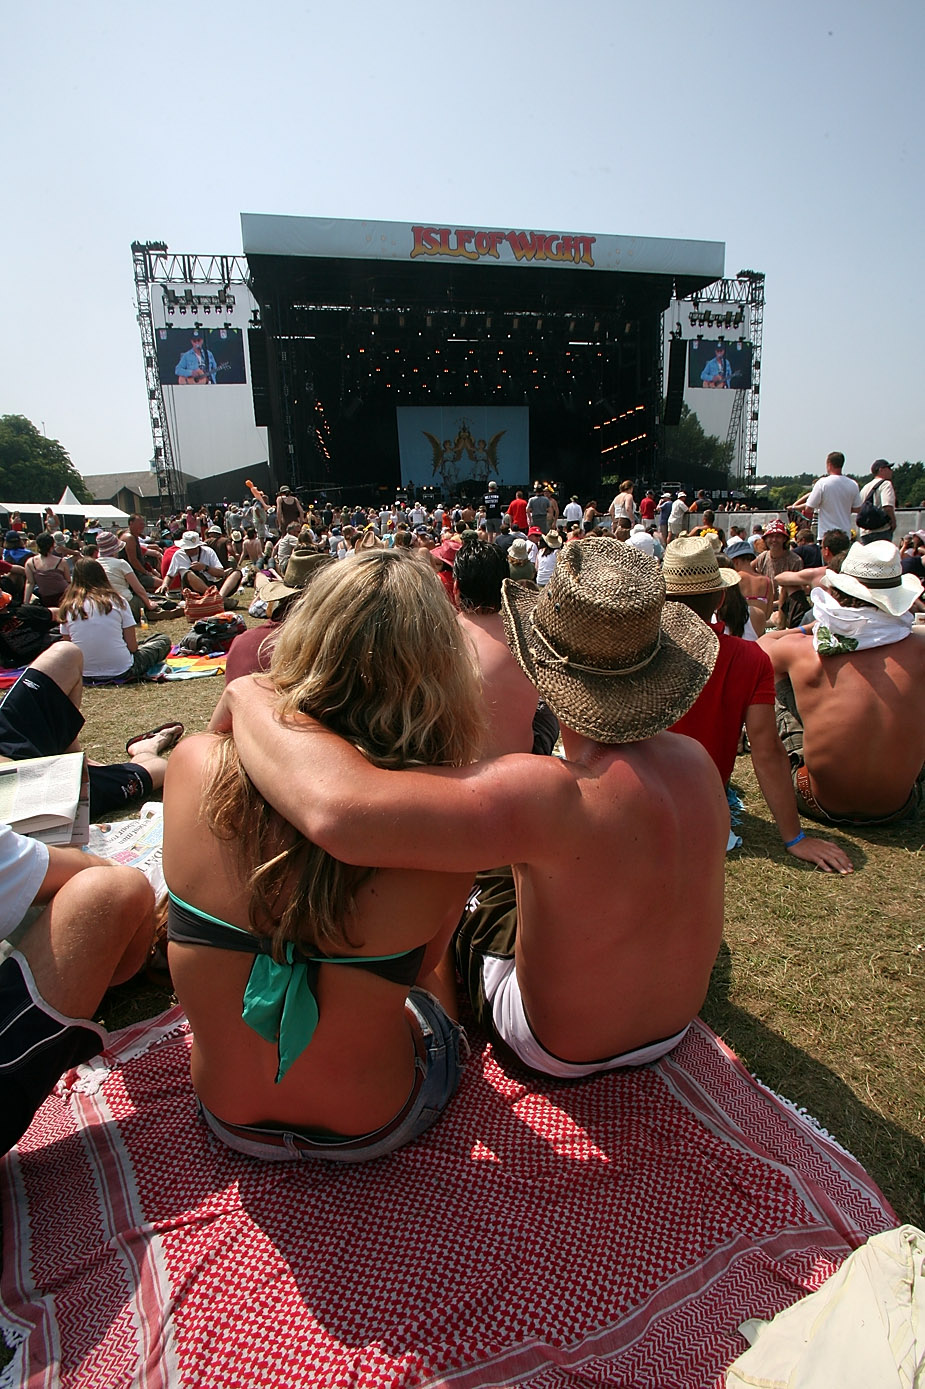 Two people watched a concert at the Wight Festival in the Isle of Wight, England.